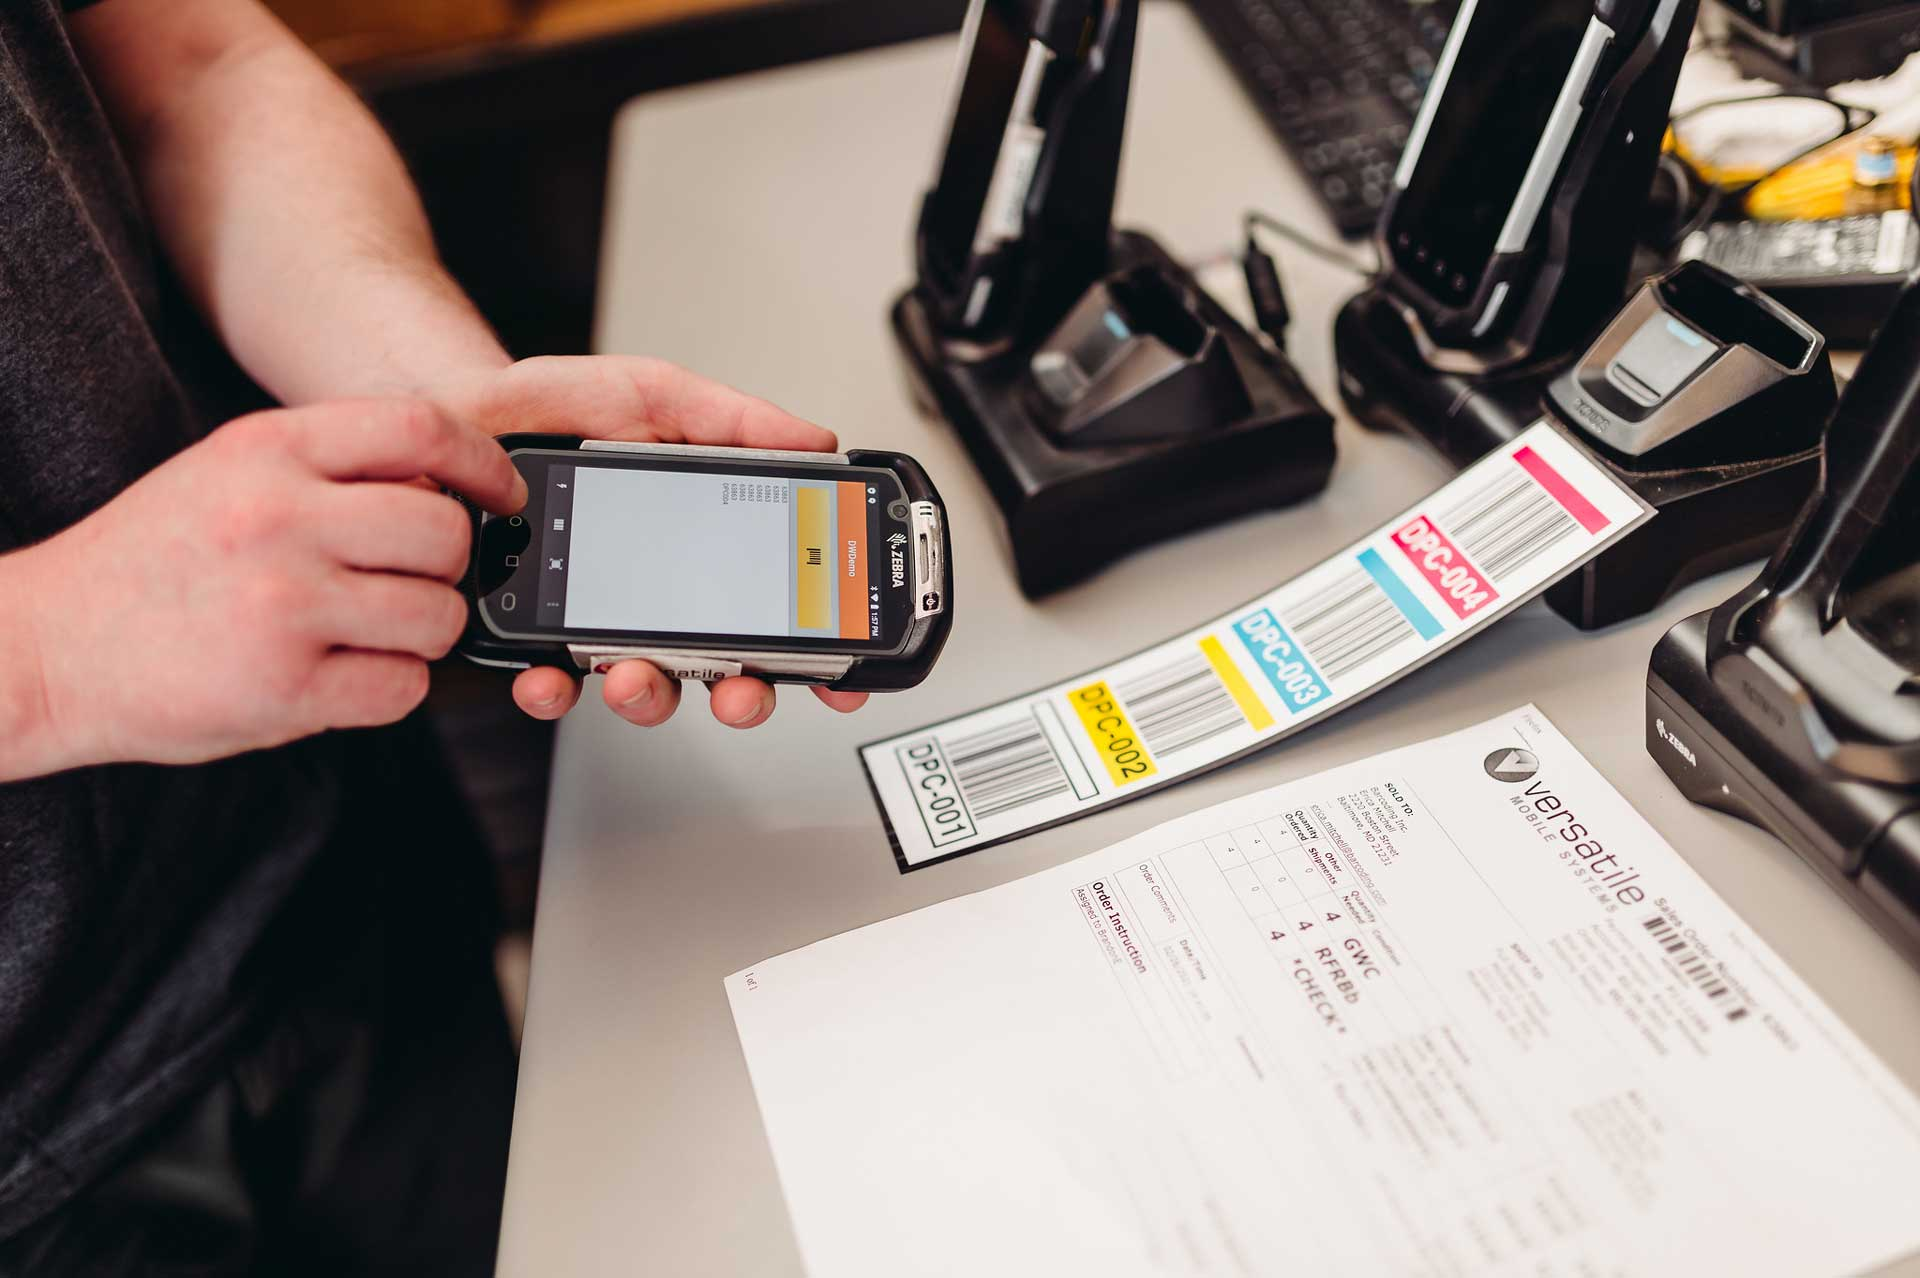 setting_up_mobile_barcode_scanning_using_android_phone